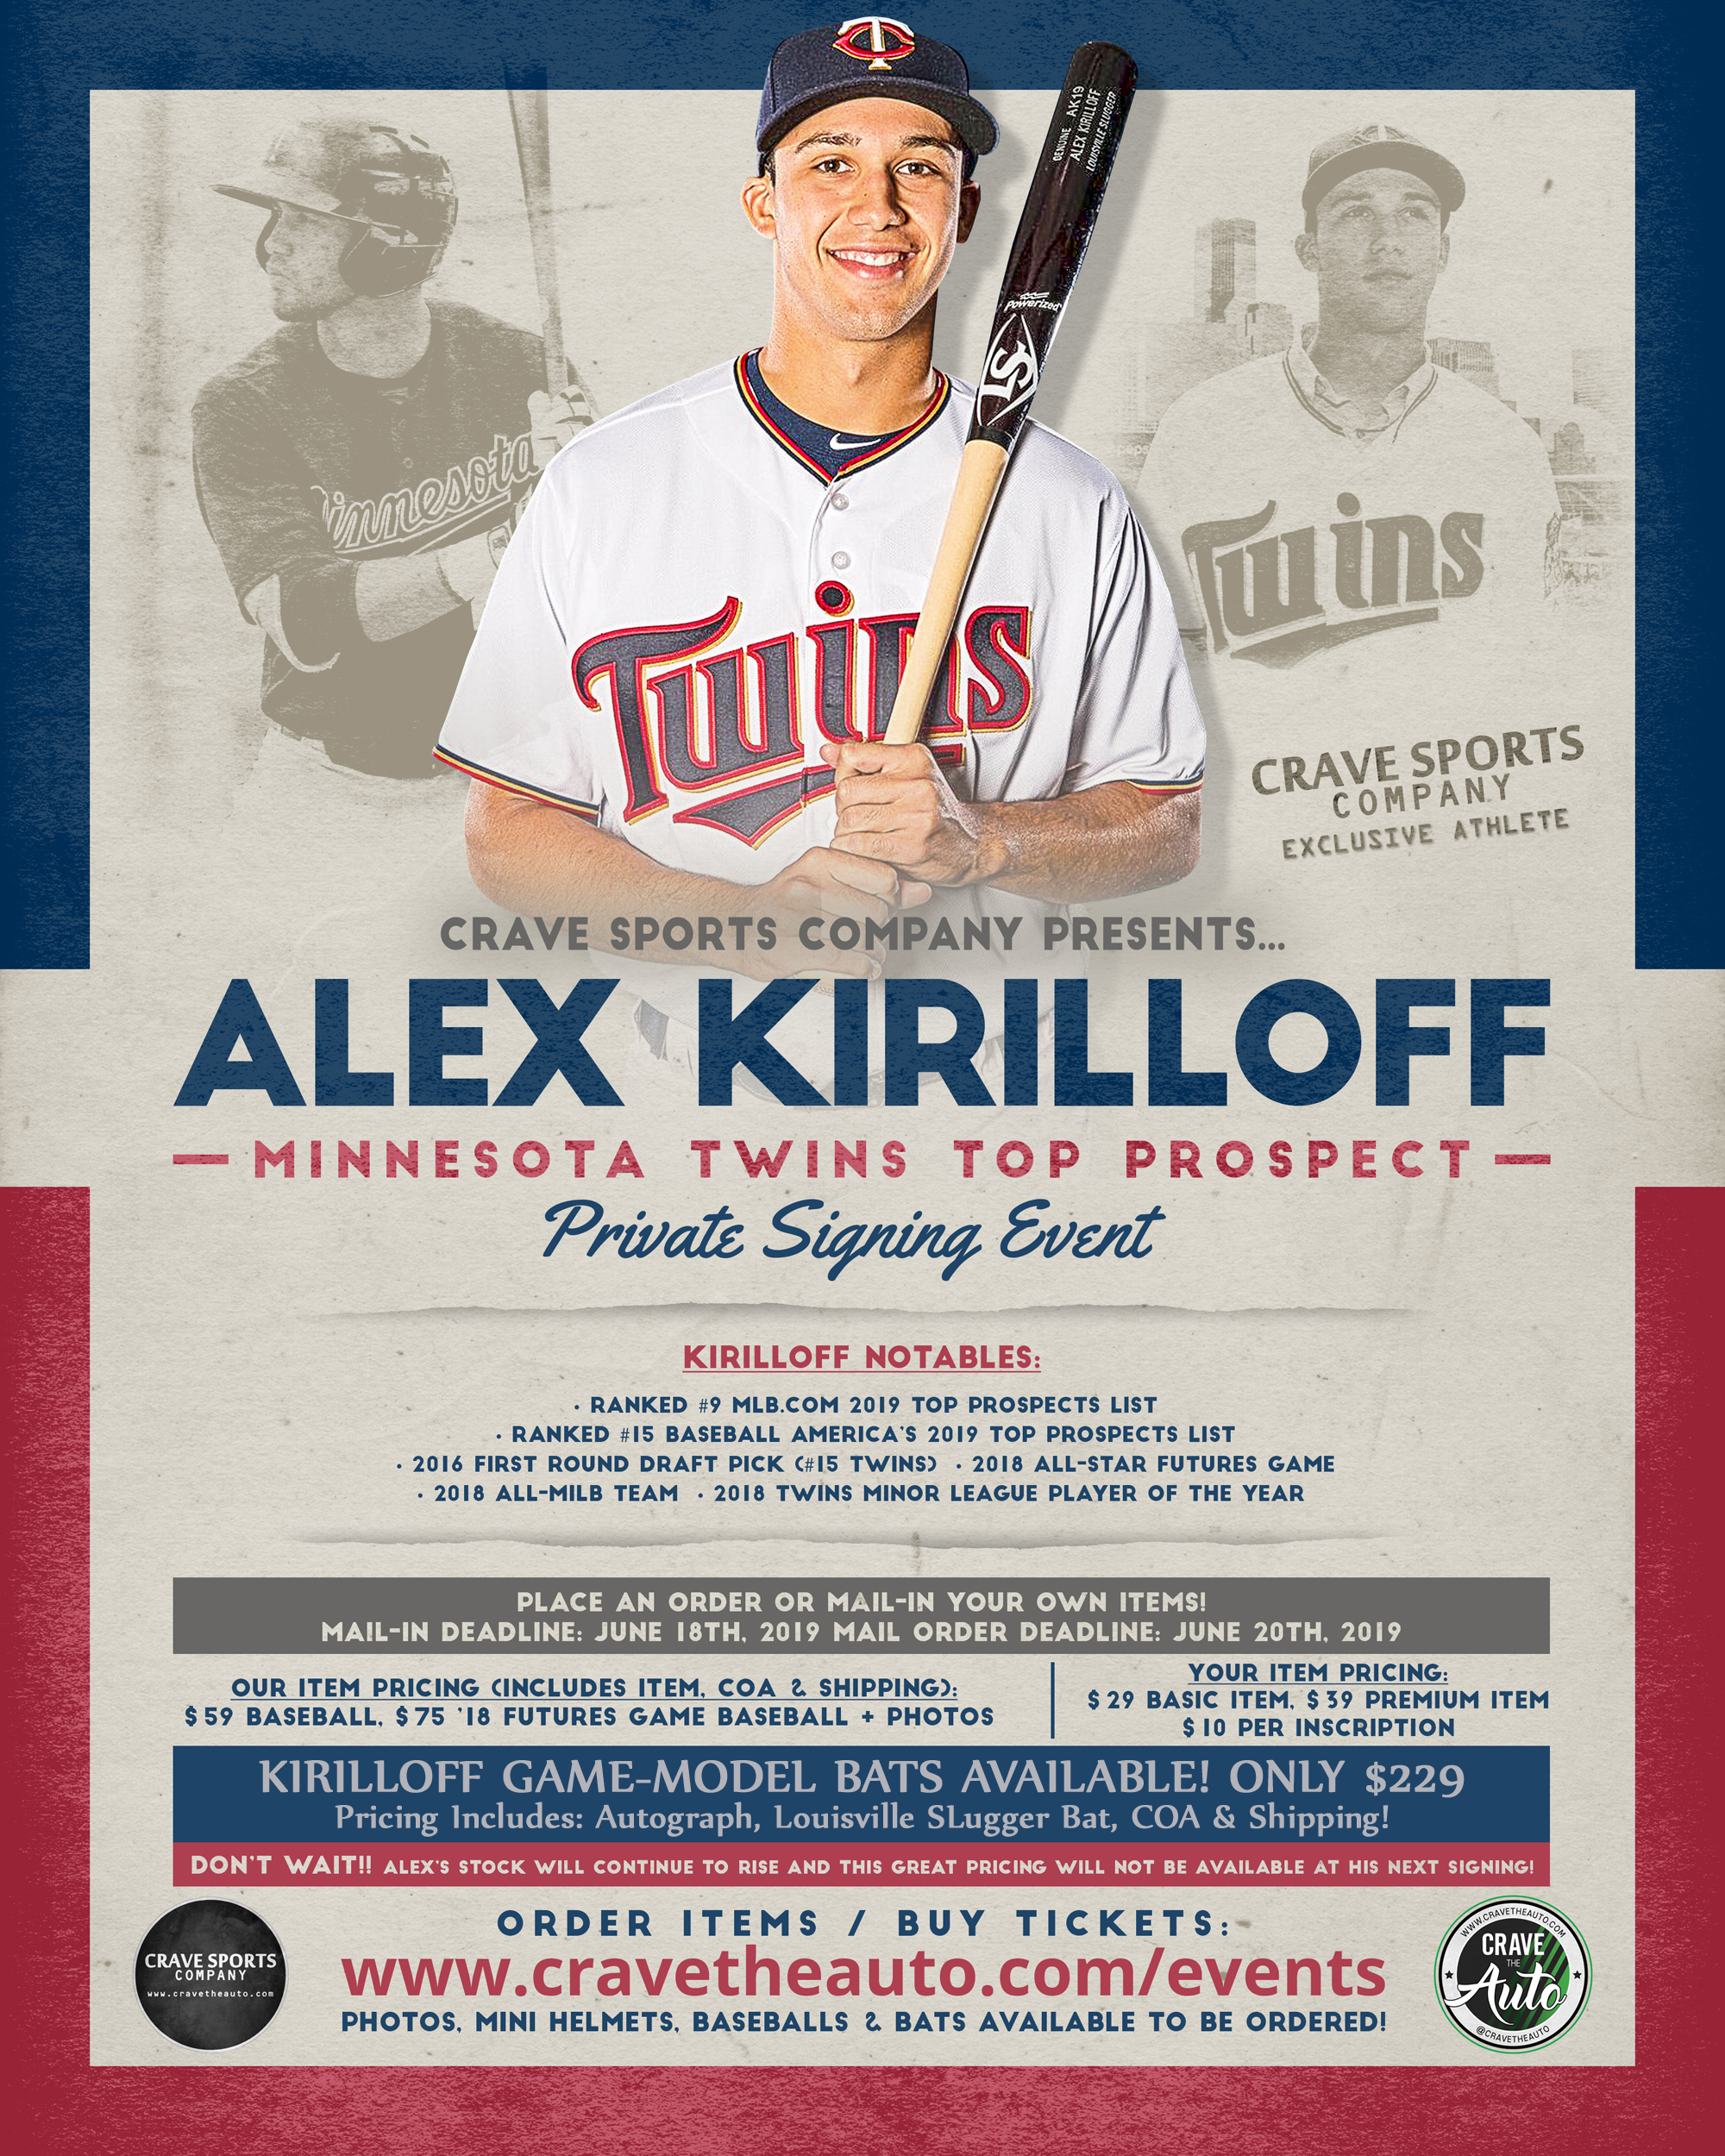 ALEX KIRILLOFF Minnesota Twins | Private Signing — Crave the Auto